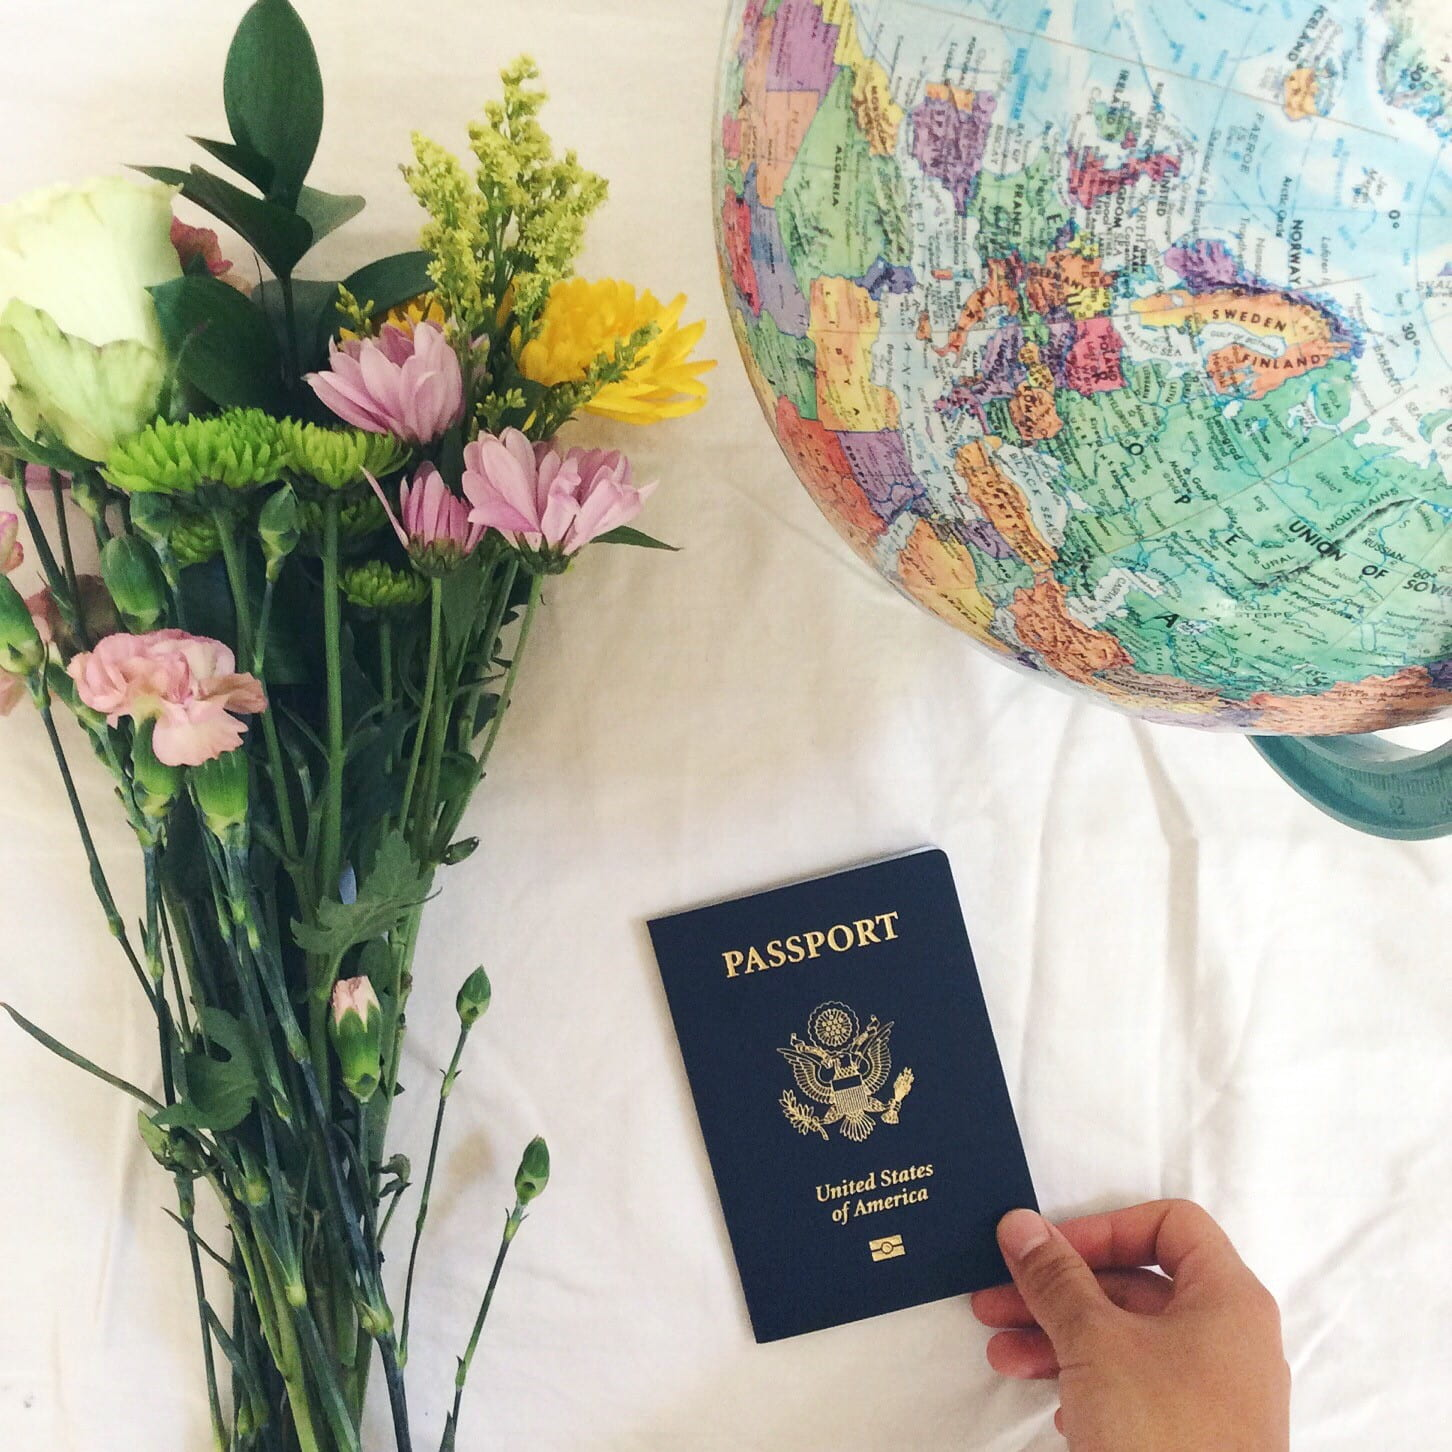 Still life with flowers globe and US passport